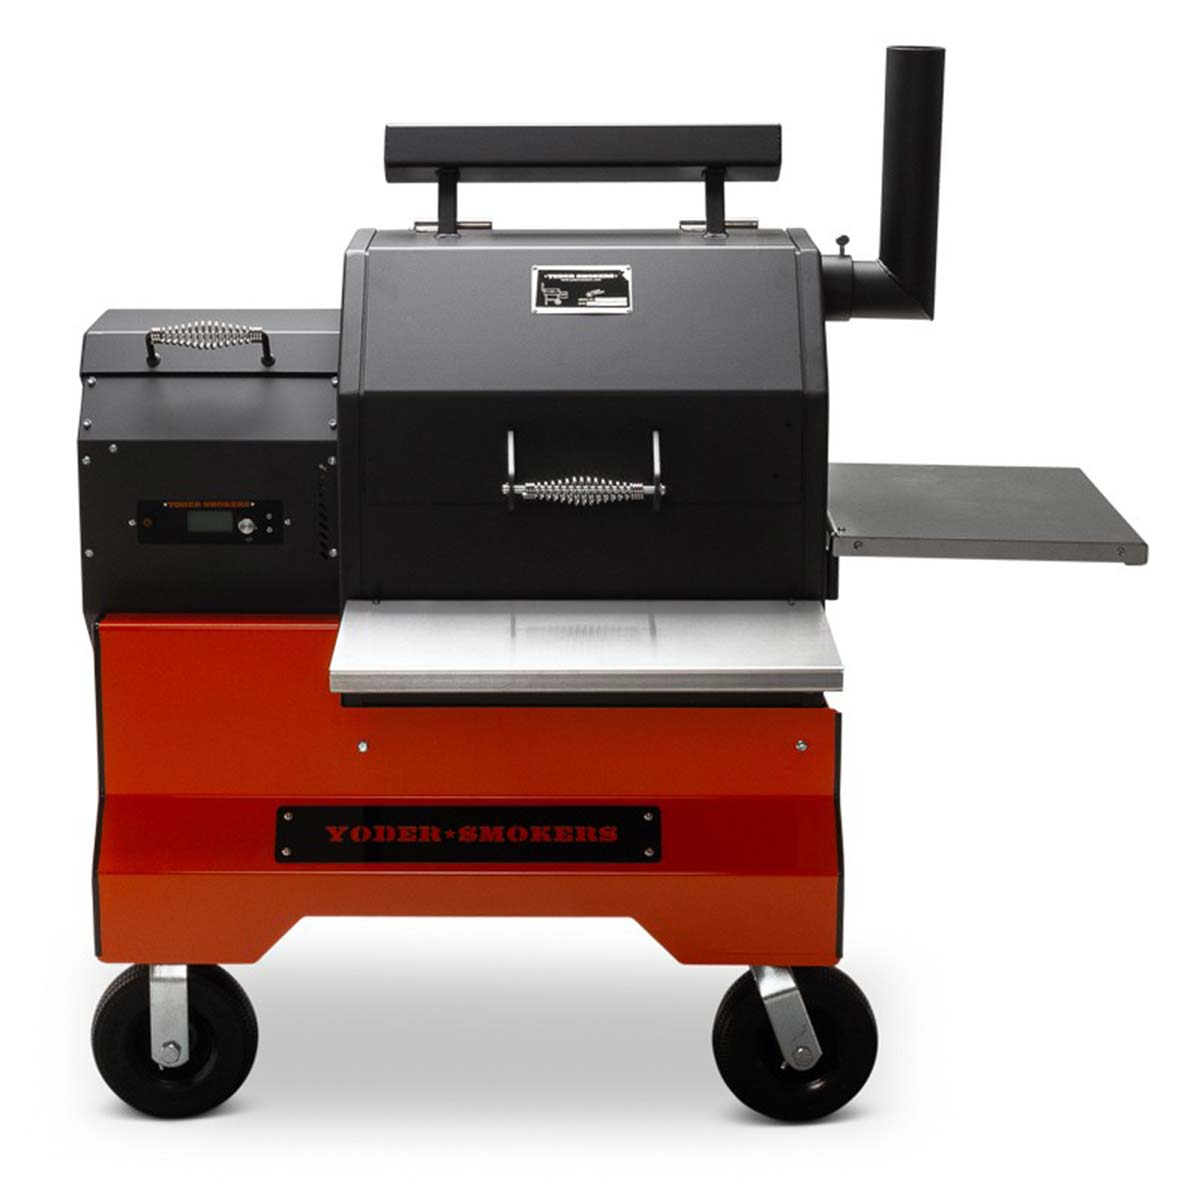 Yoder Smokers YS480S Pellet Grill on Competition Care